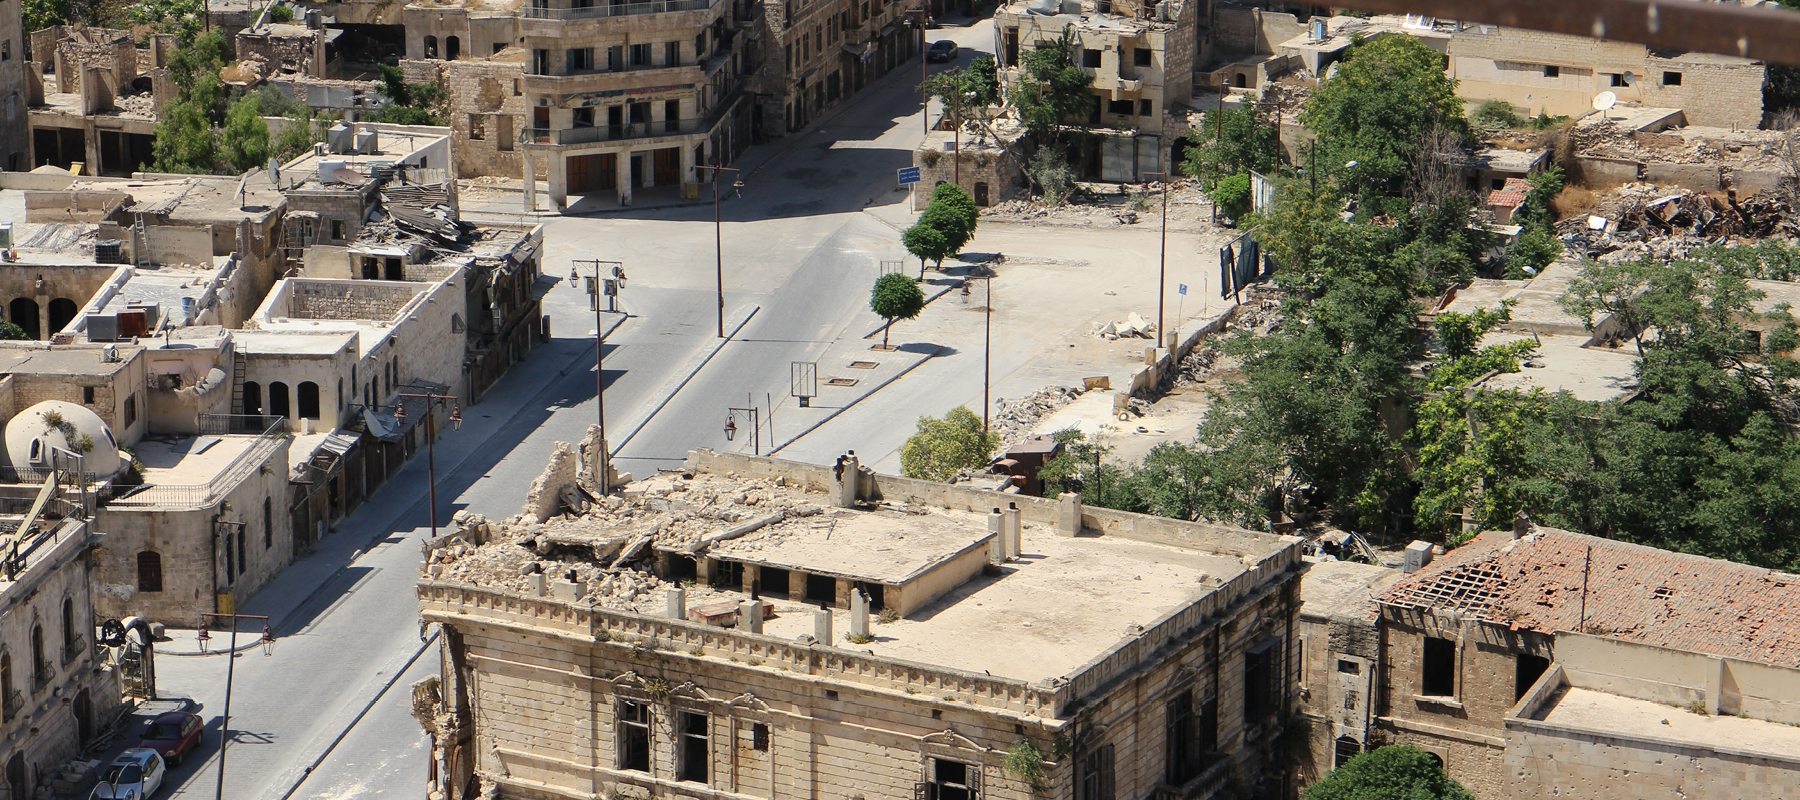 City Aleppo